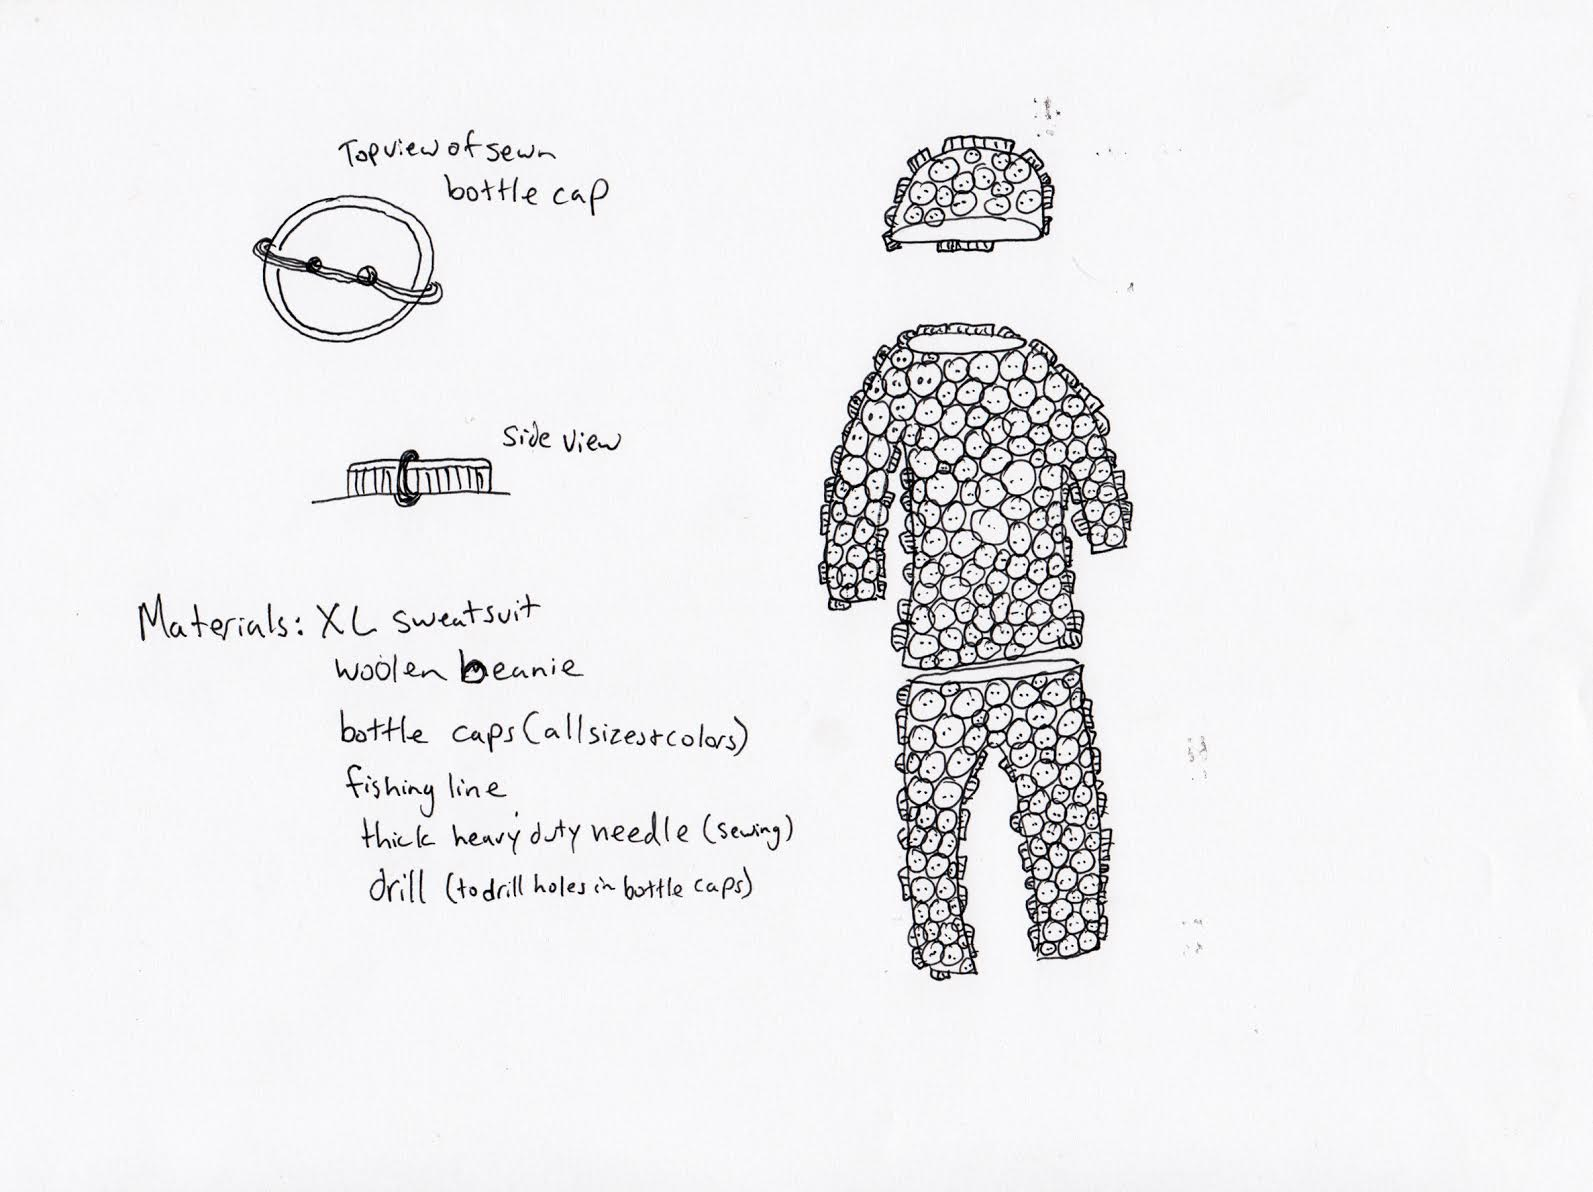 Make your own Plastic Bottle Cap costume using this diagram drawn by Megan Kilroy.